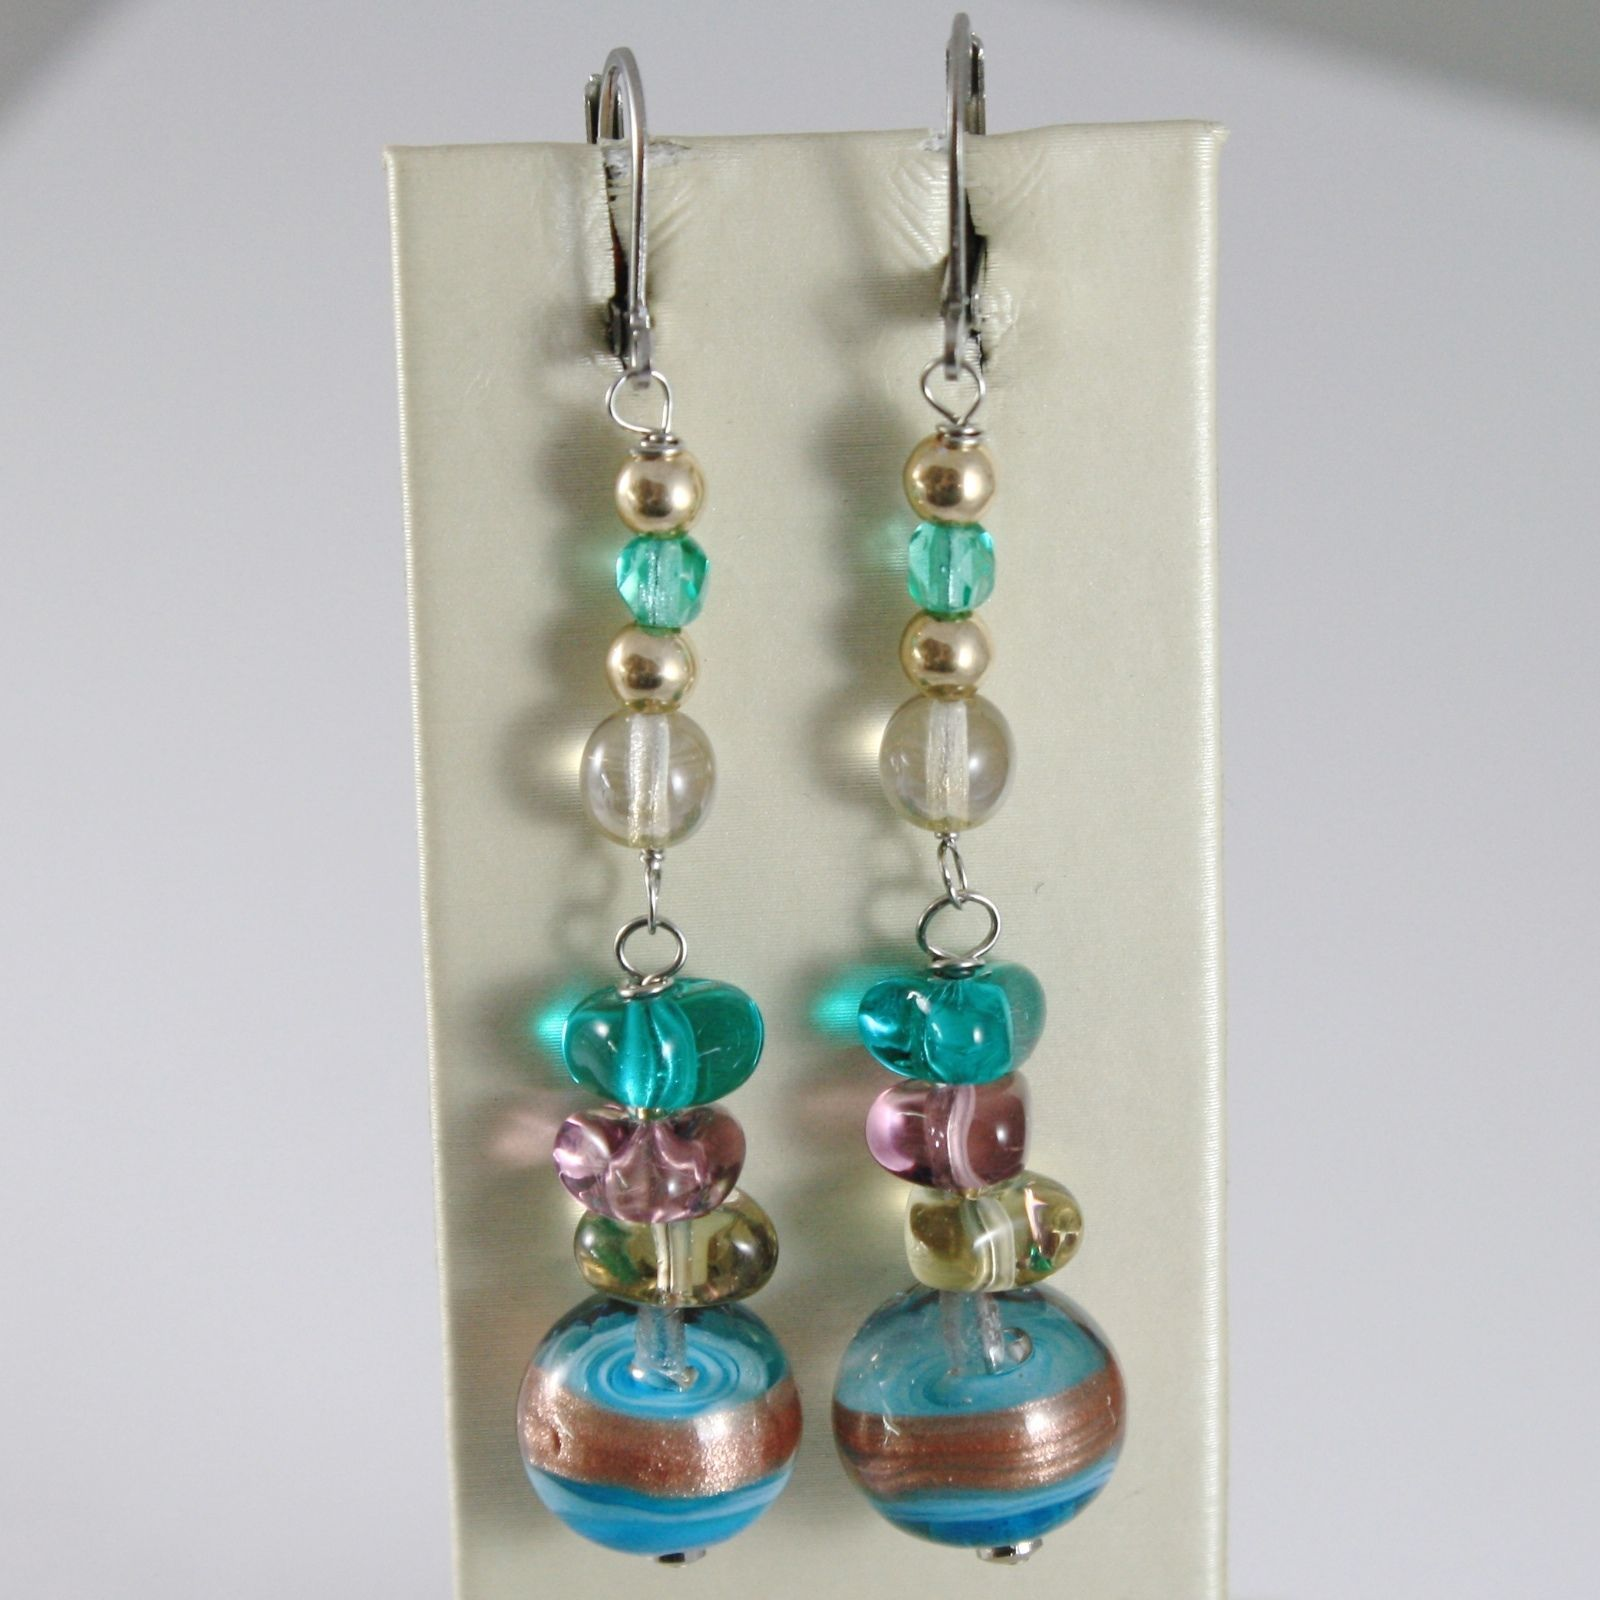 ANTICA MURRINA VENEZIA PENDANT EARRINGS BLUE GREEN FINELY STRIPED BALL